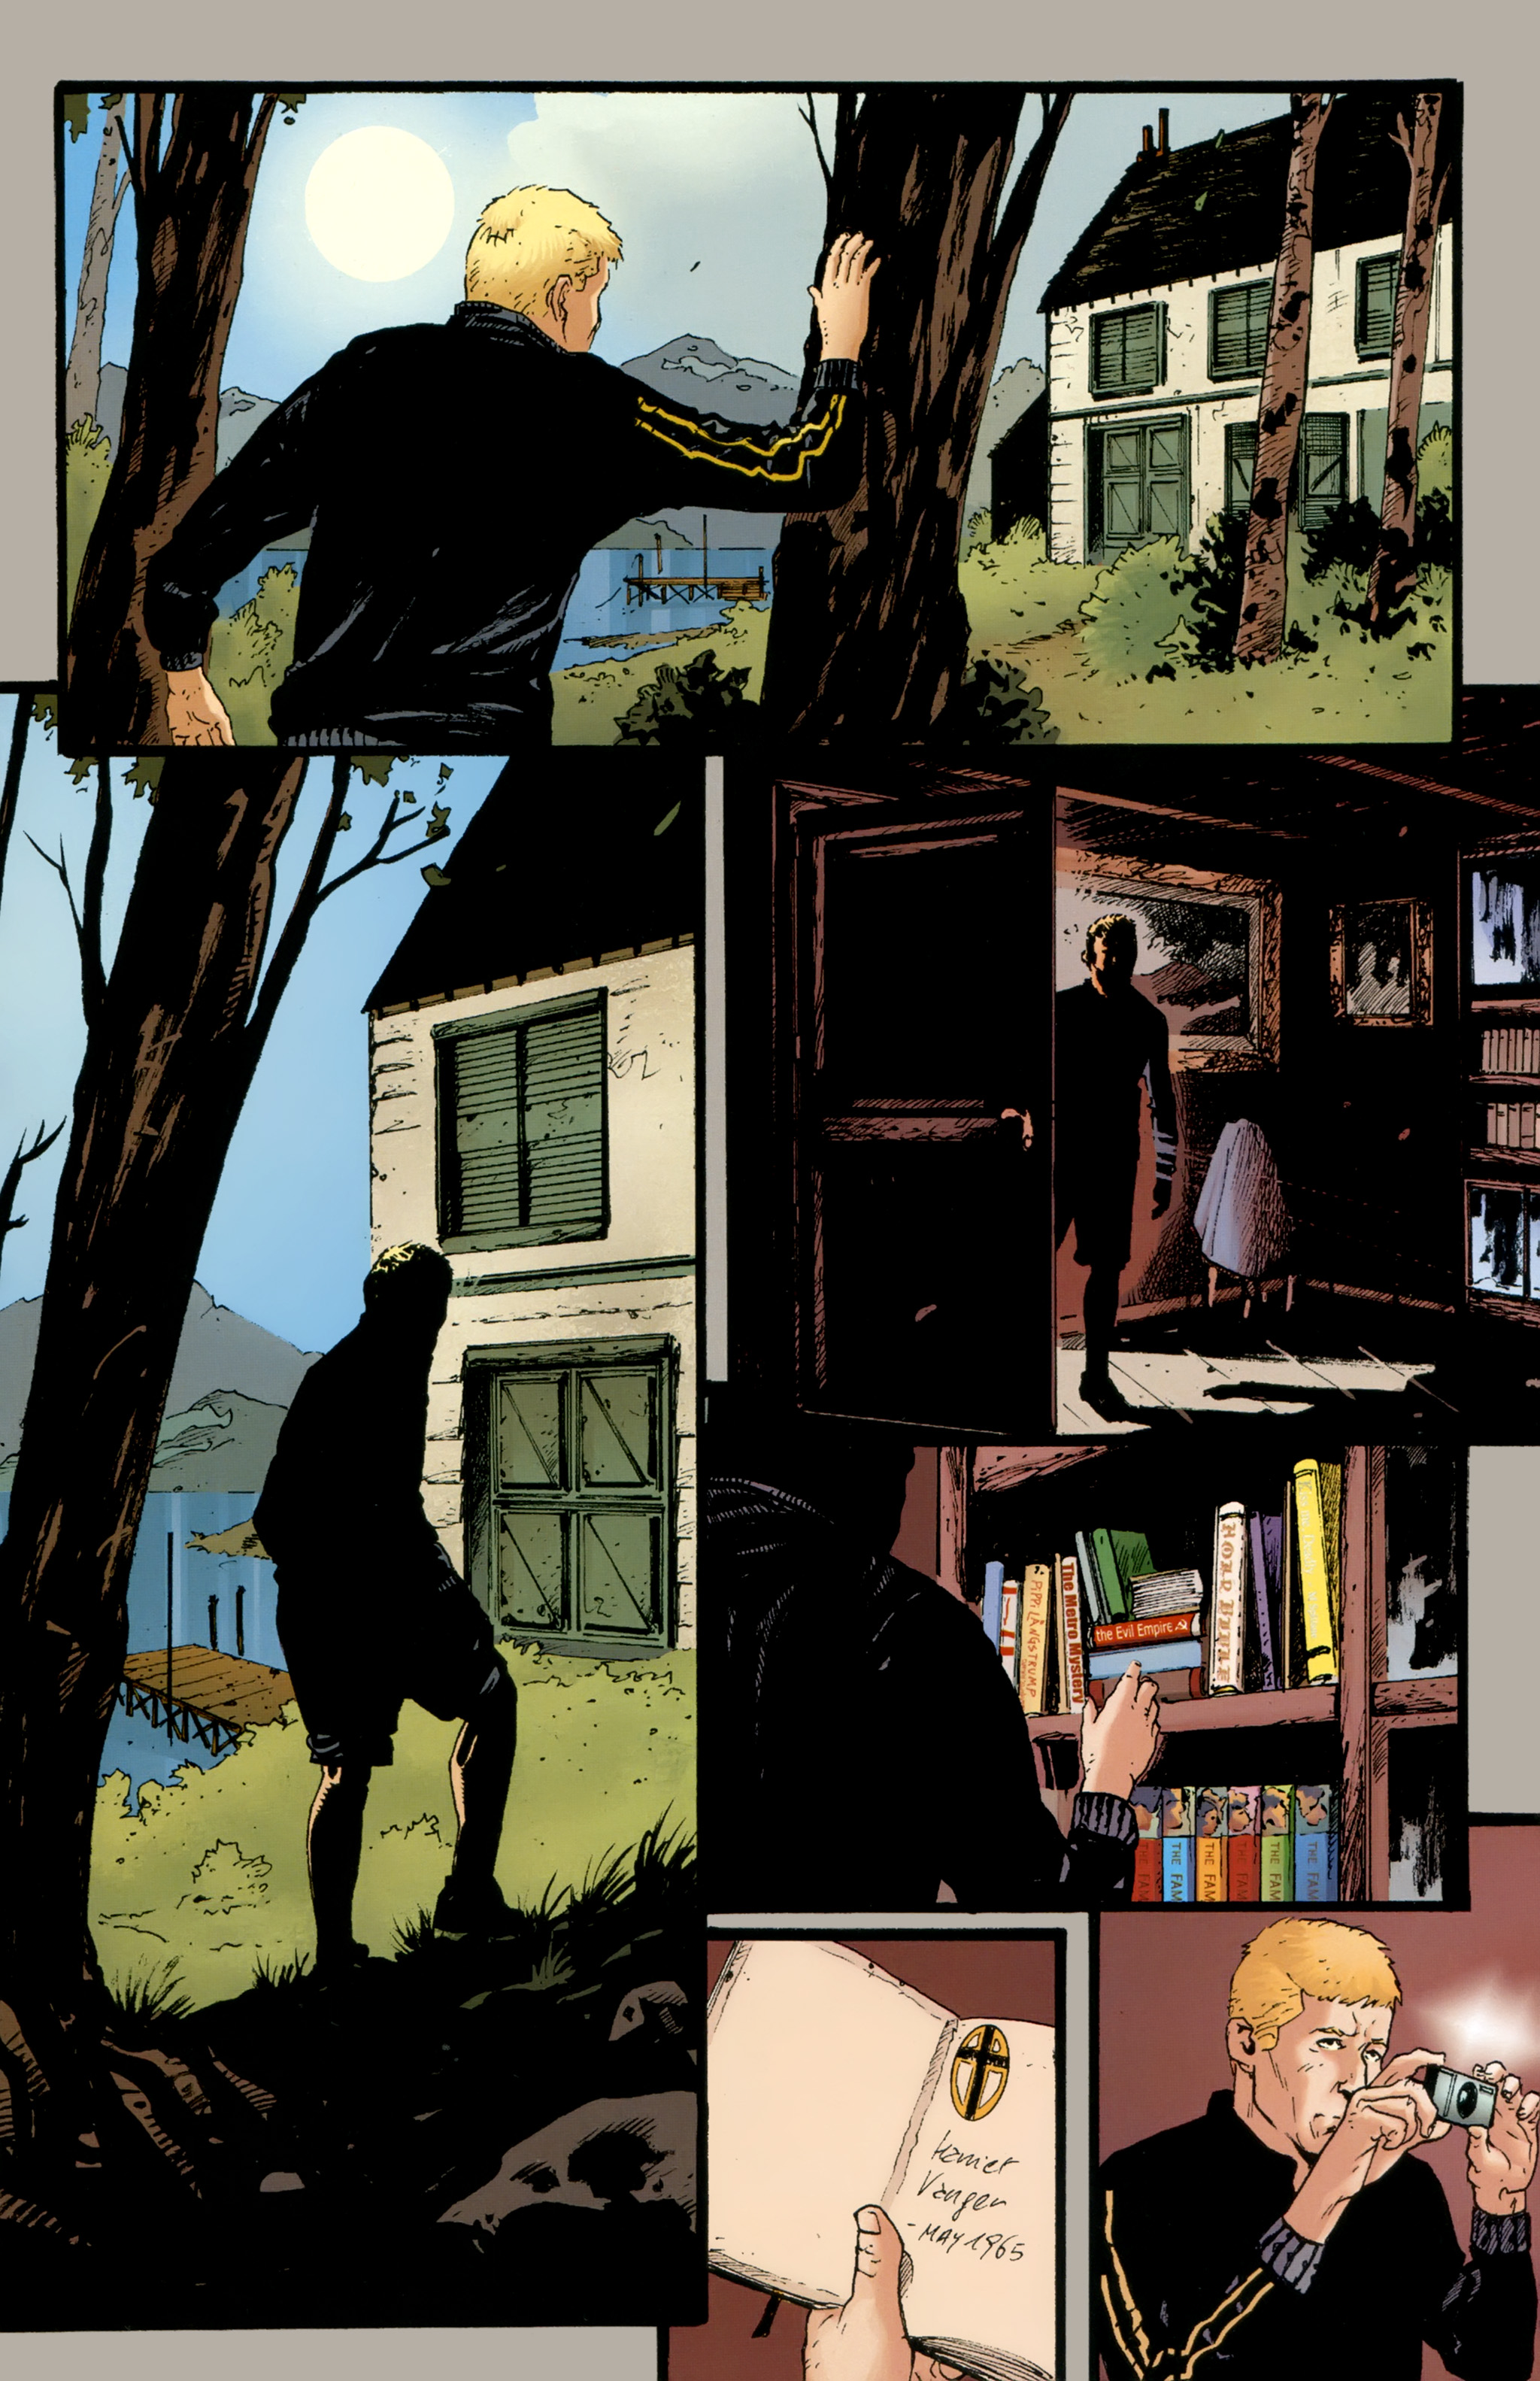 Read online The Girl With the Dragon Tattoo comic -  Issue # TPB 2 - 22